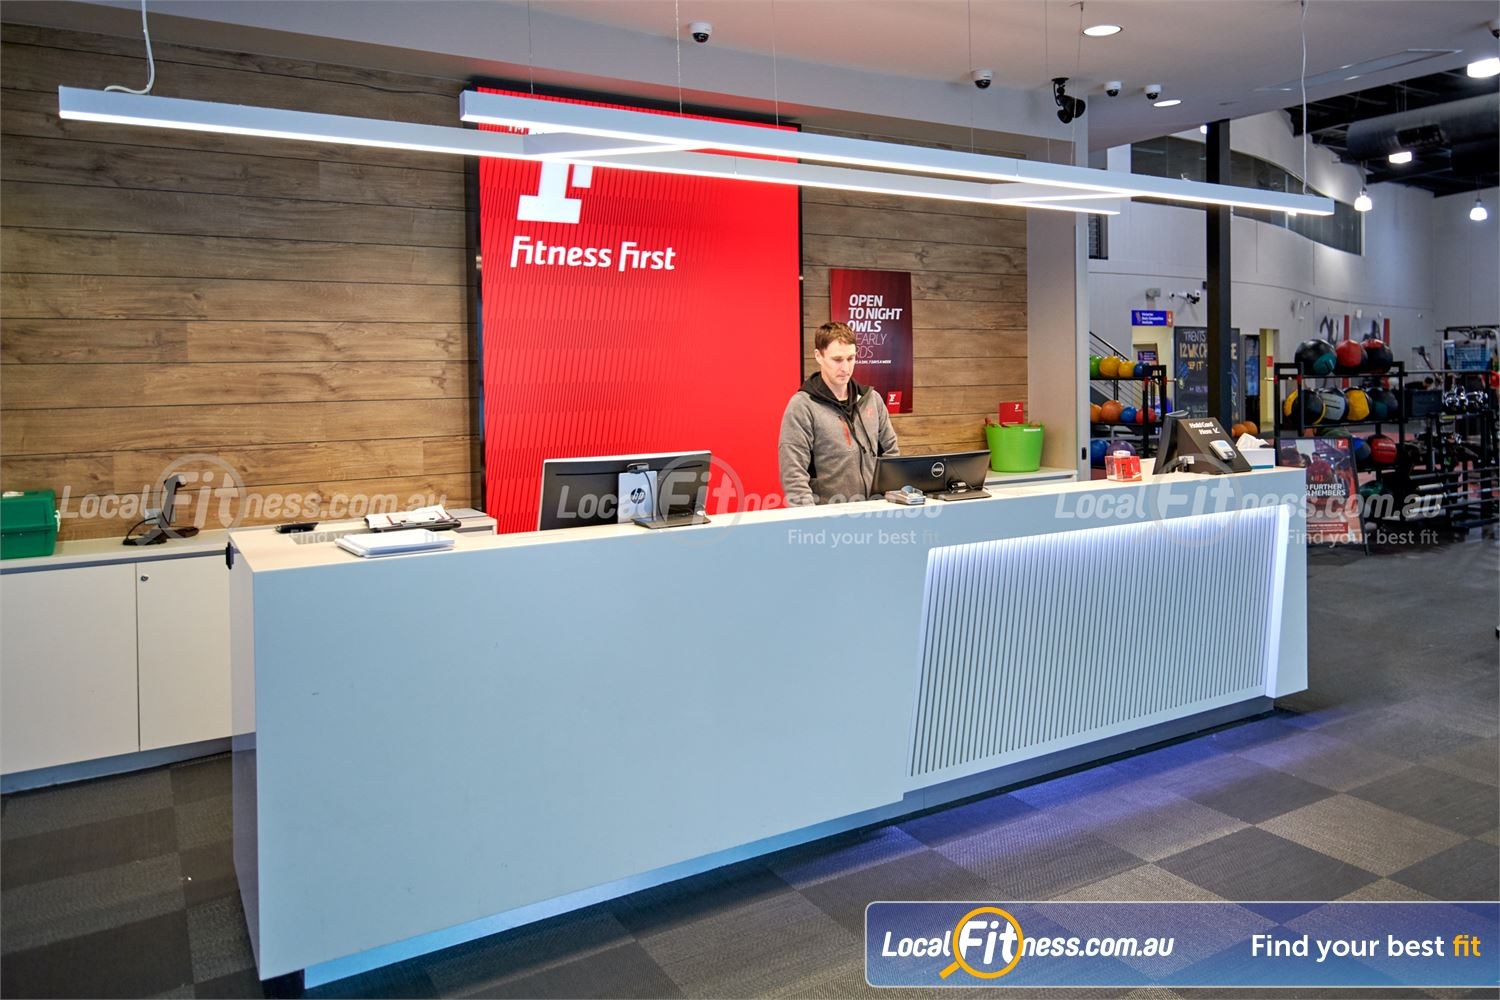 Fitness First Glen Waverley Our Fitness First Glen Waverley team are ready to help you find your best fit.